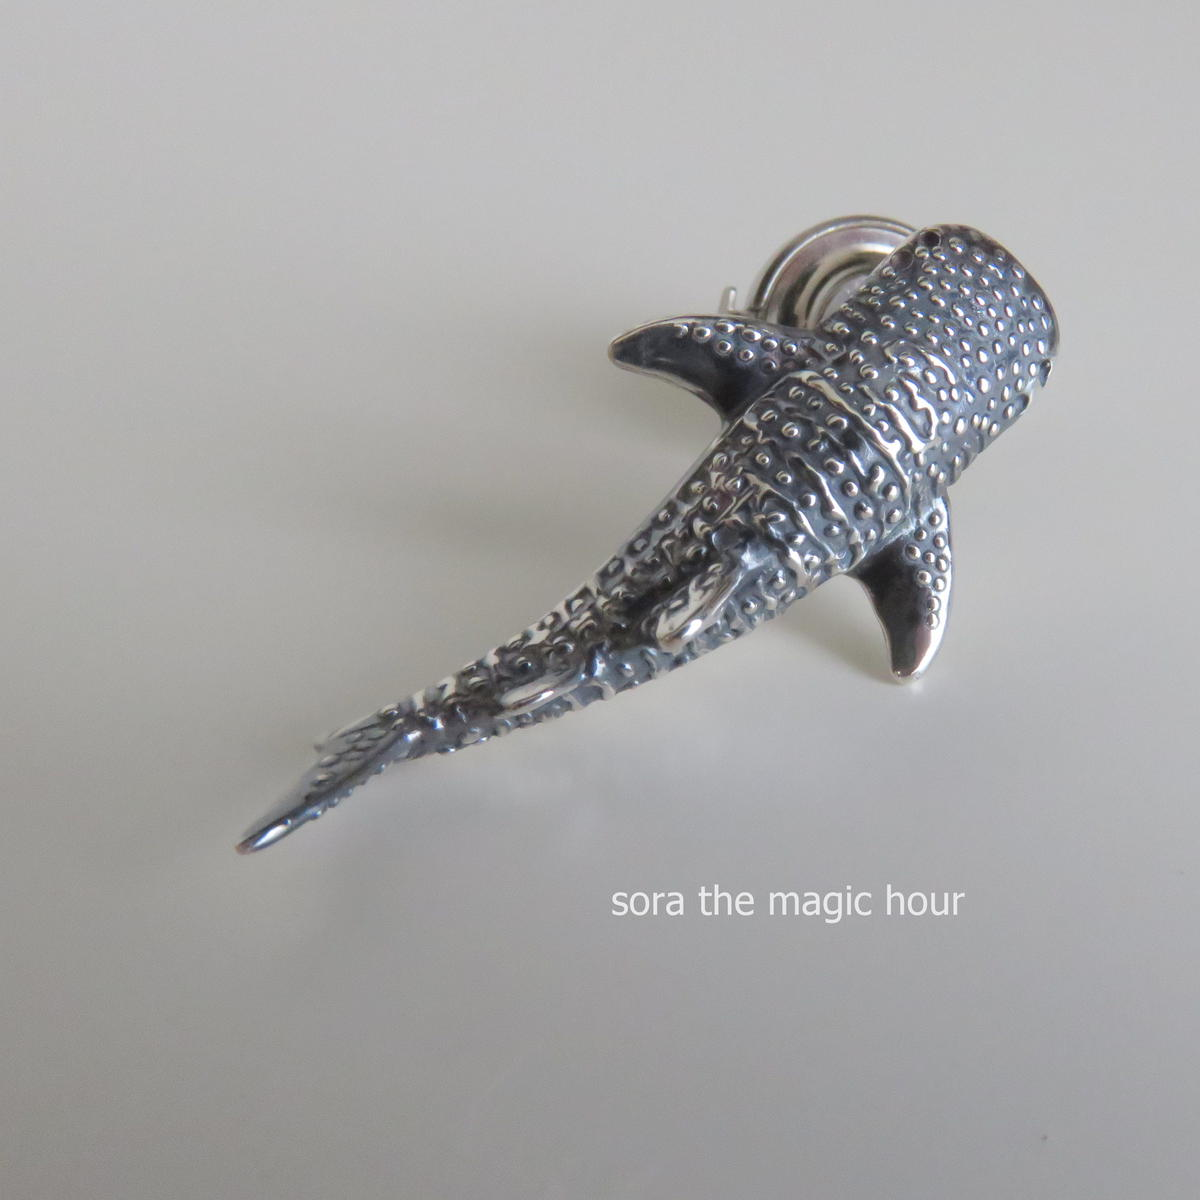 sora the magic hour jewelry            ジンベエザメ ネックレス Whale shark necklace